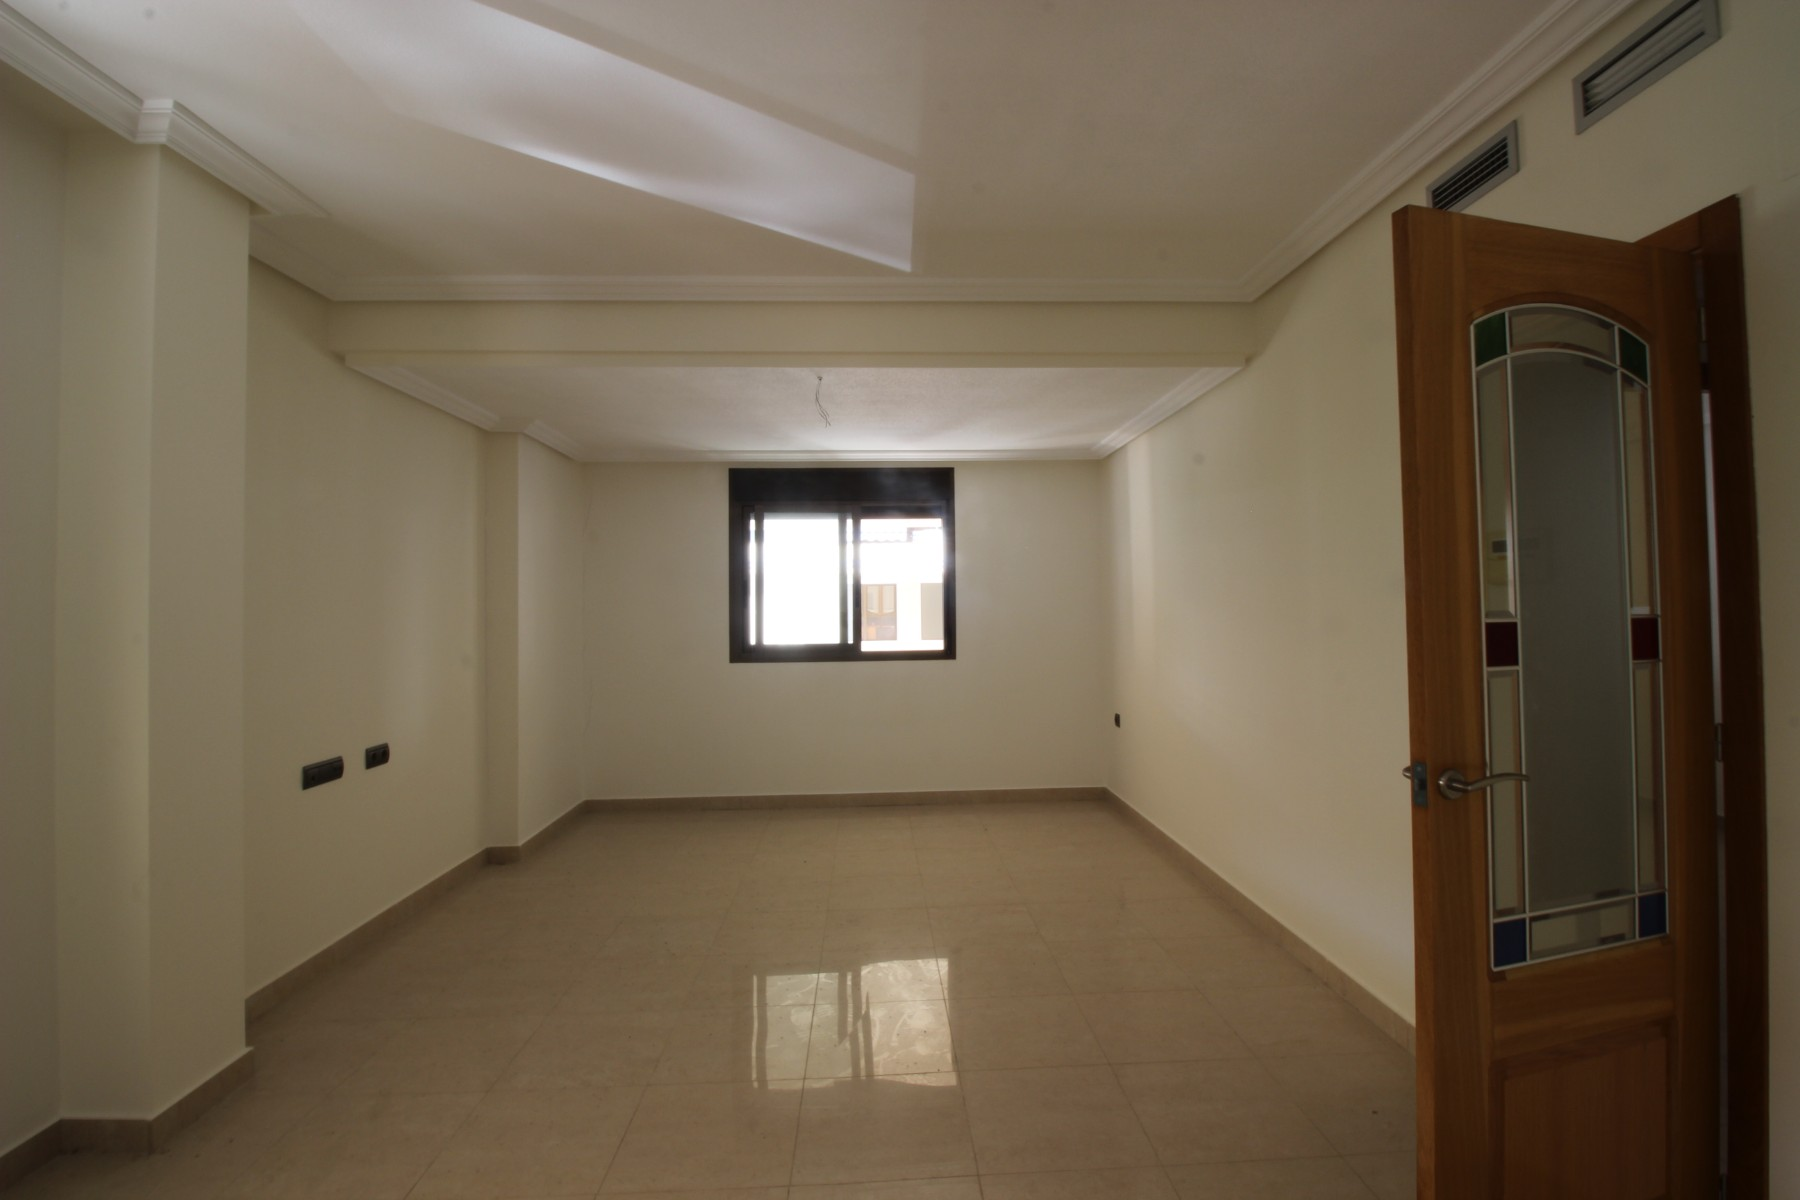 3 bedroom Apartment in Guardamar del Segura - New build in Nexus Grupo